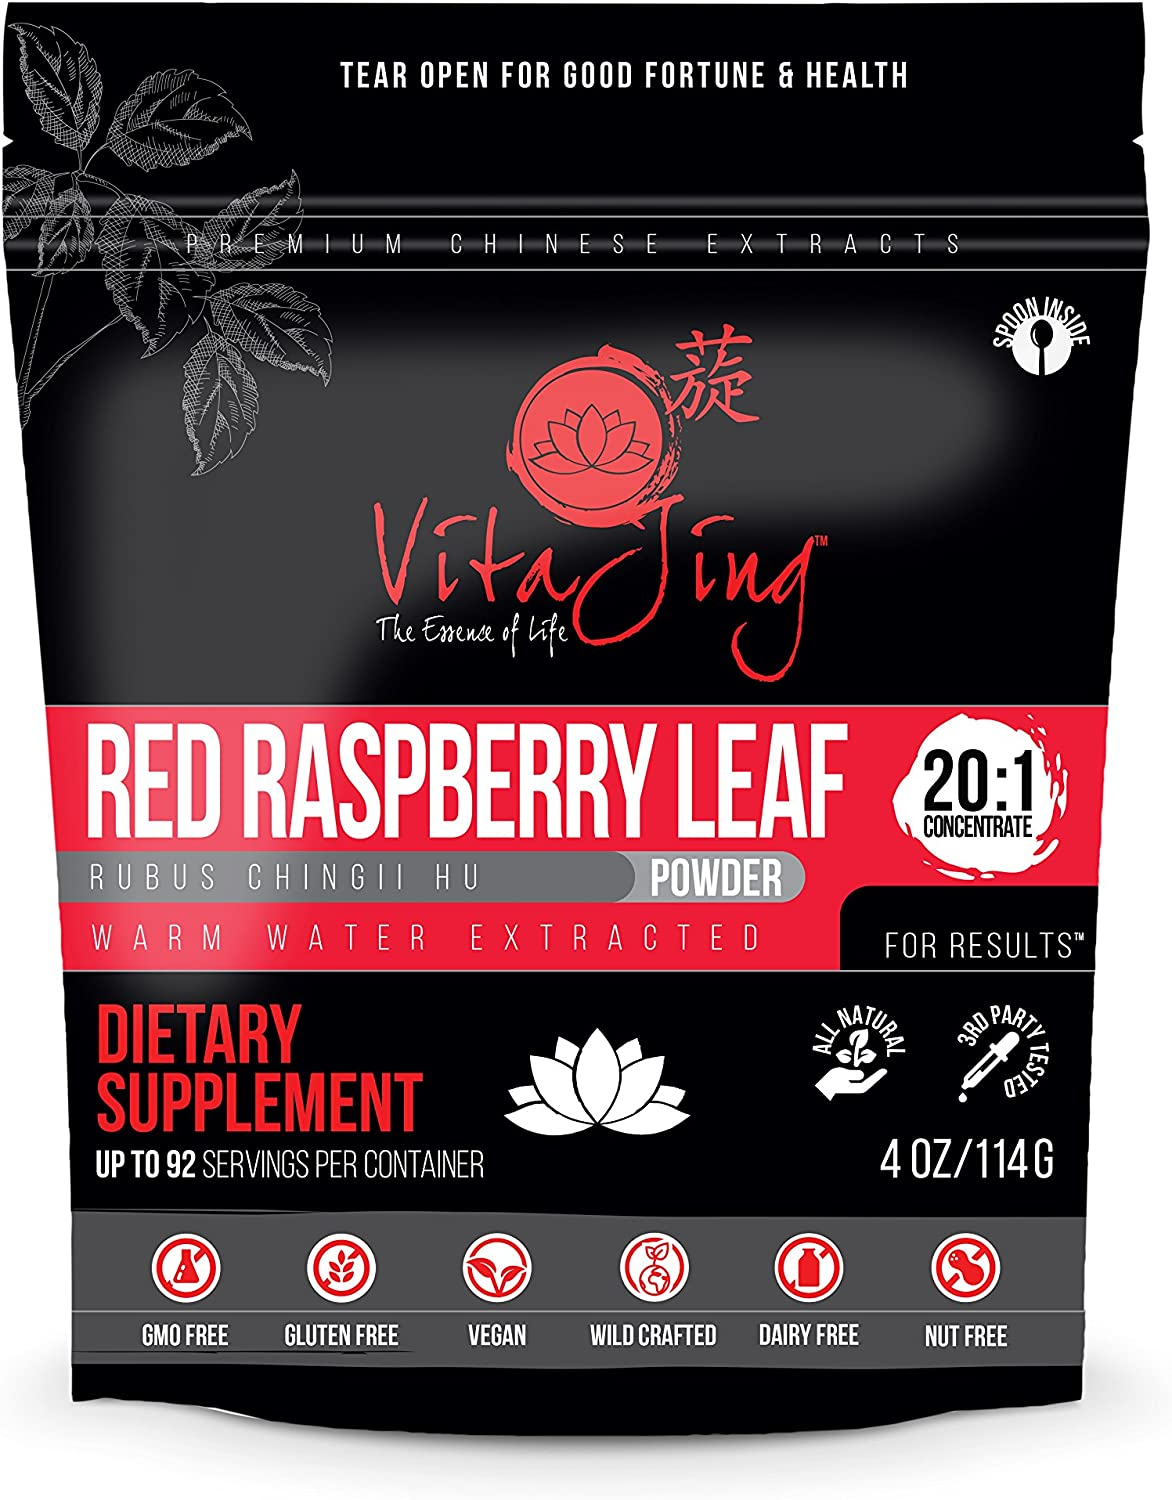 Red Raspberry Leaf Extract Powder 20 1 CONCENTRATION 4oz-114gm